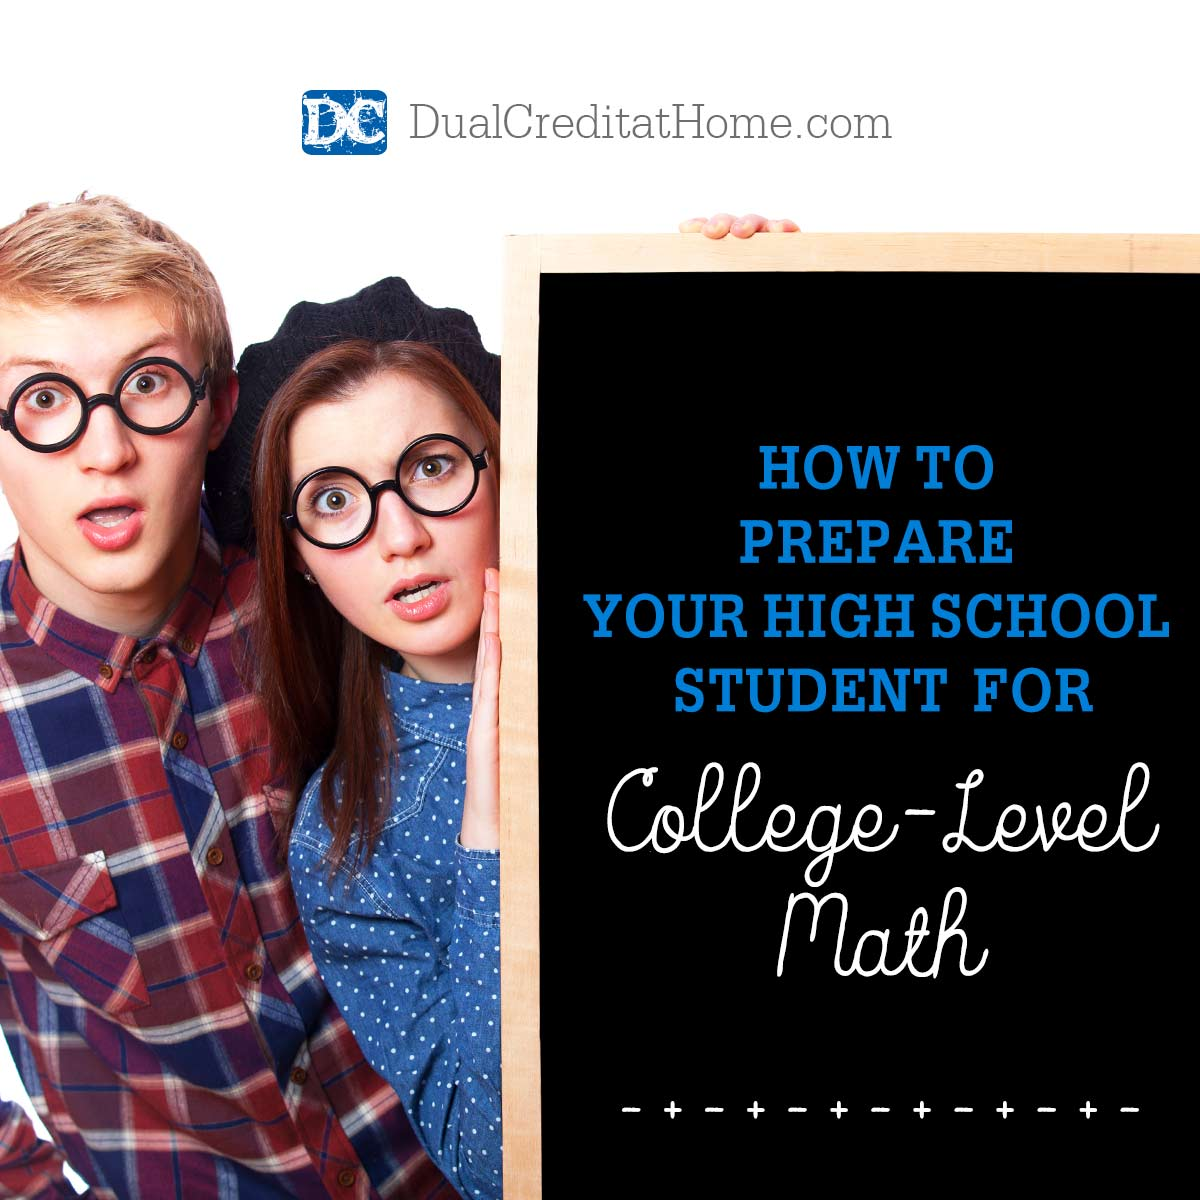 How To Prepare Your High School Student For College Level Math